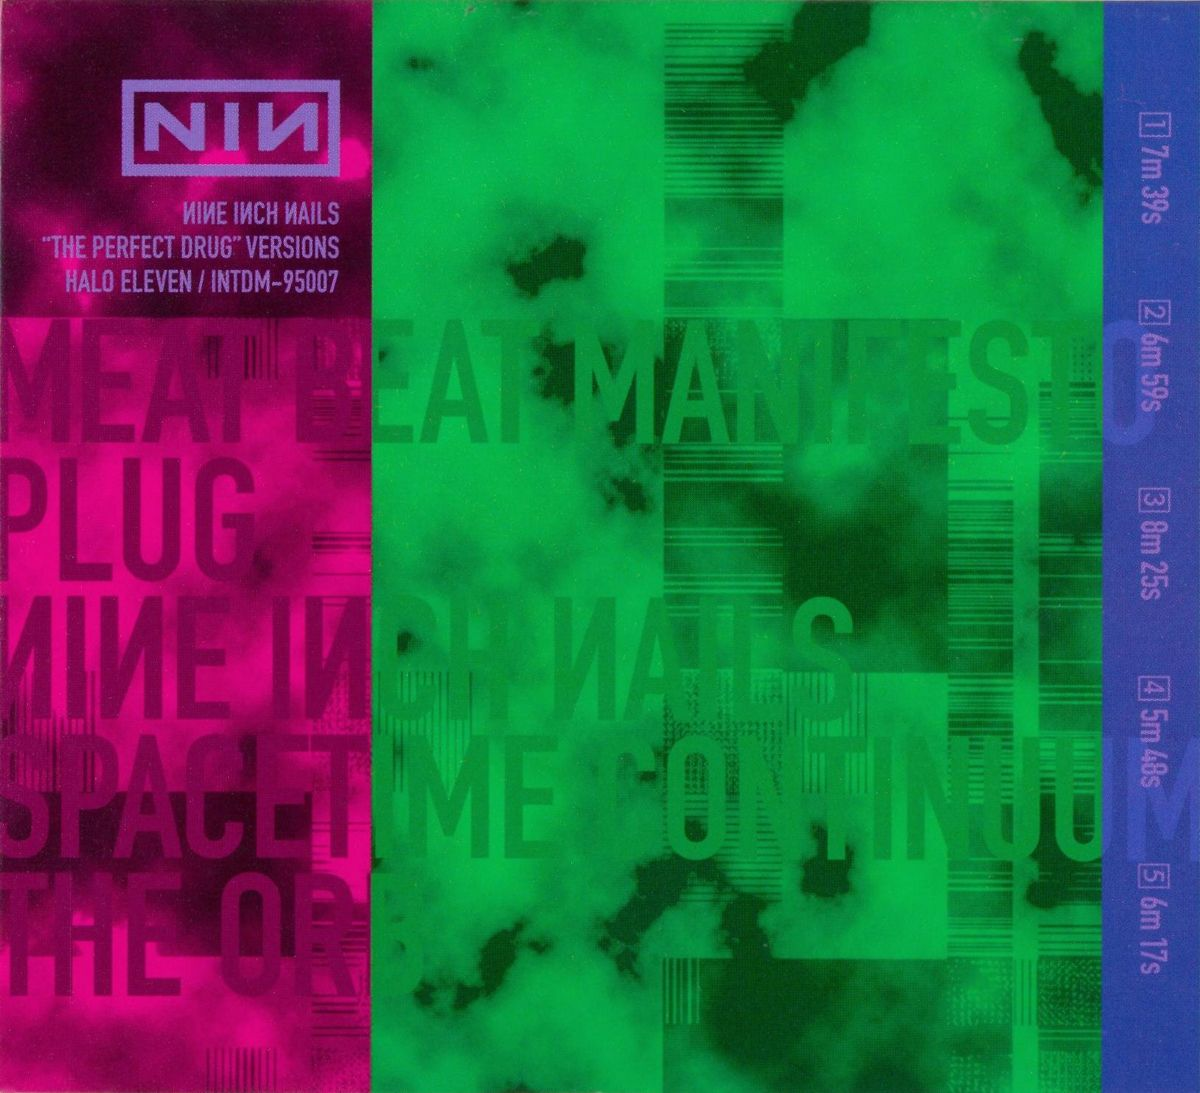 Nine Inch Nails - The Perfect Drug (Halo 11) (1997) | album cover ...